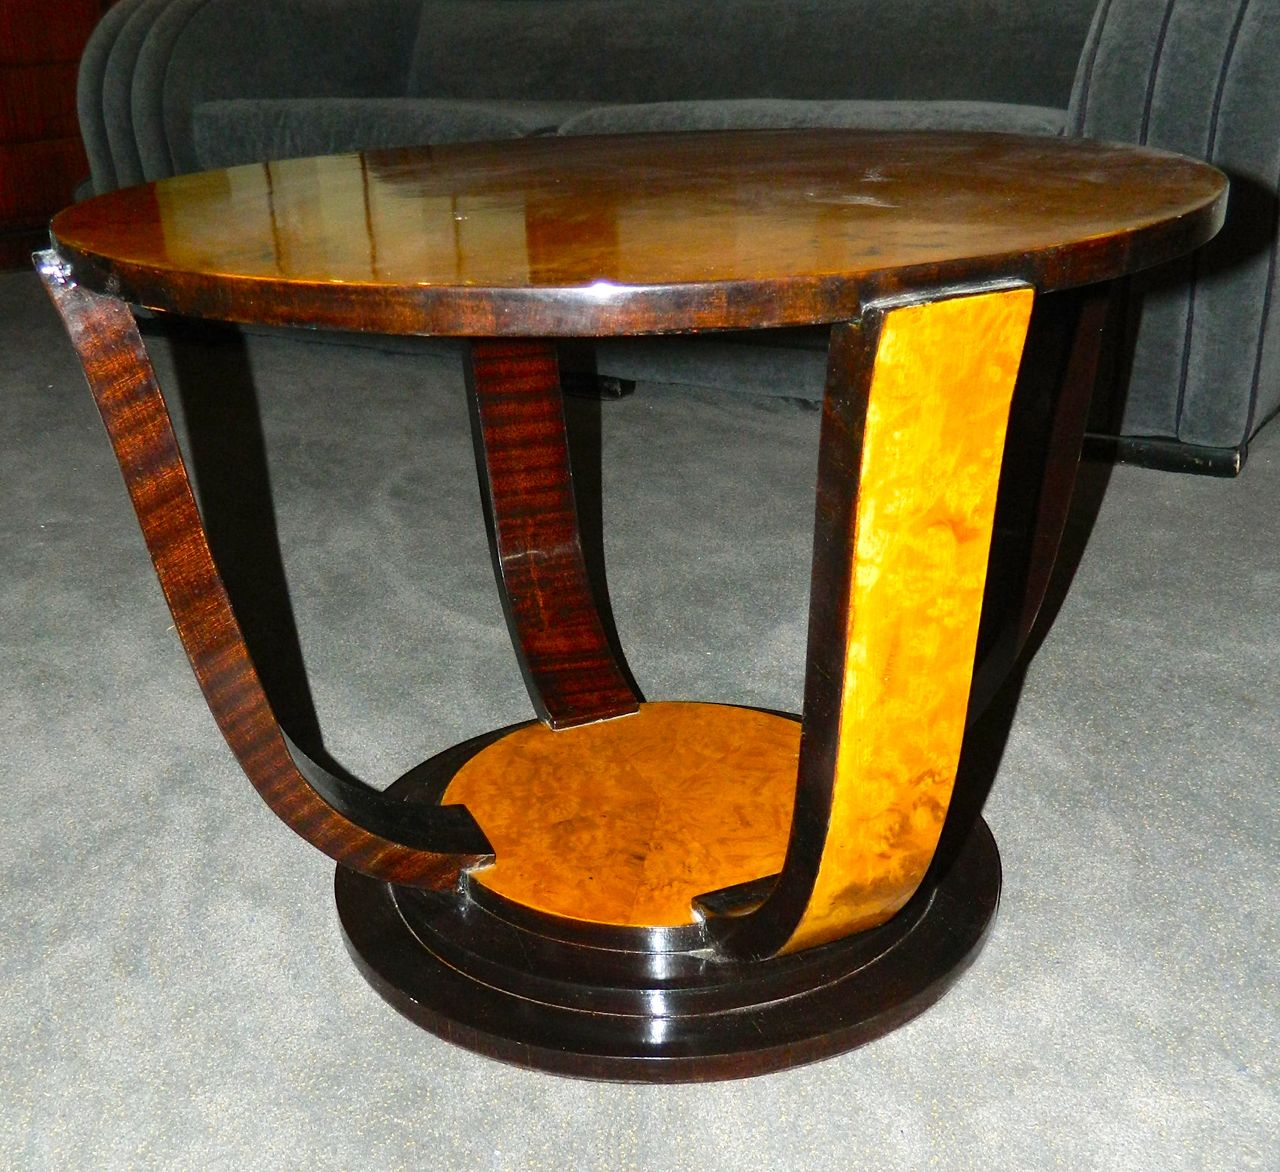 Two Tone Art Deco Round Table Sold Items Small Tables